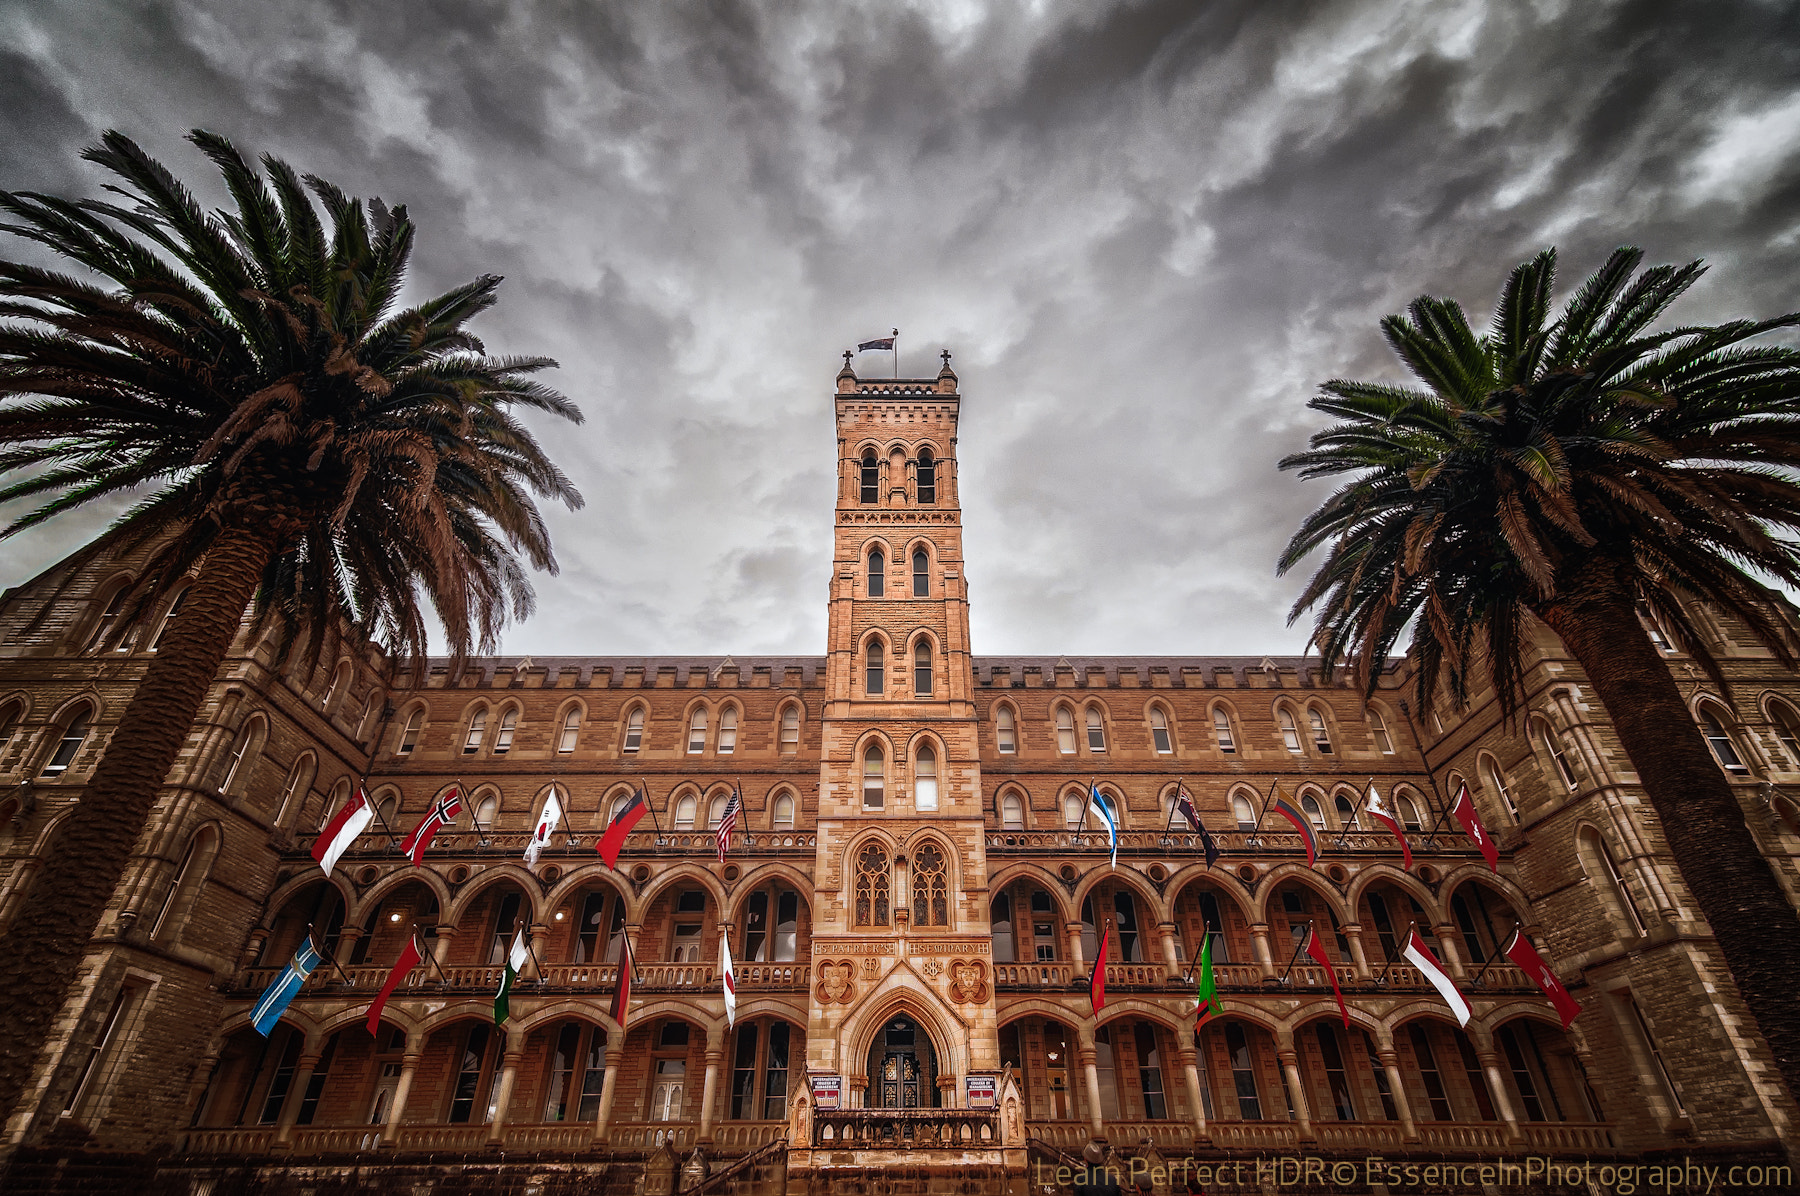 Photograph International School of Management - Sydney by Captain Photo on 500px